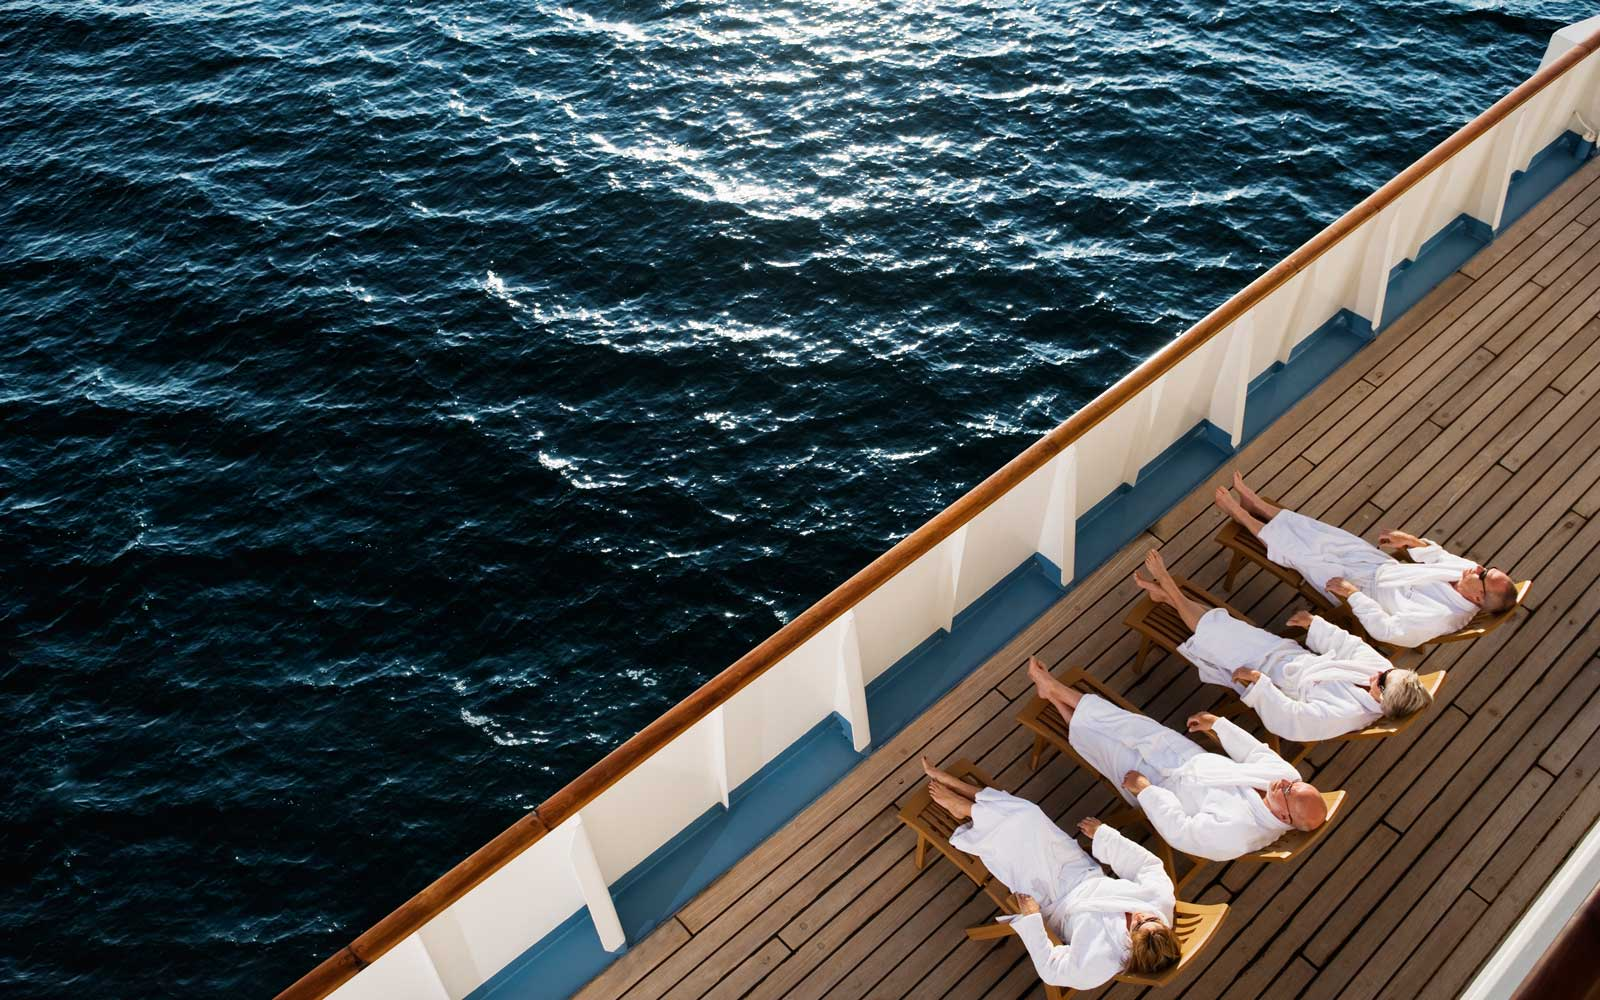 Four friends relaxing on a cruise ship deck